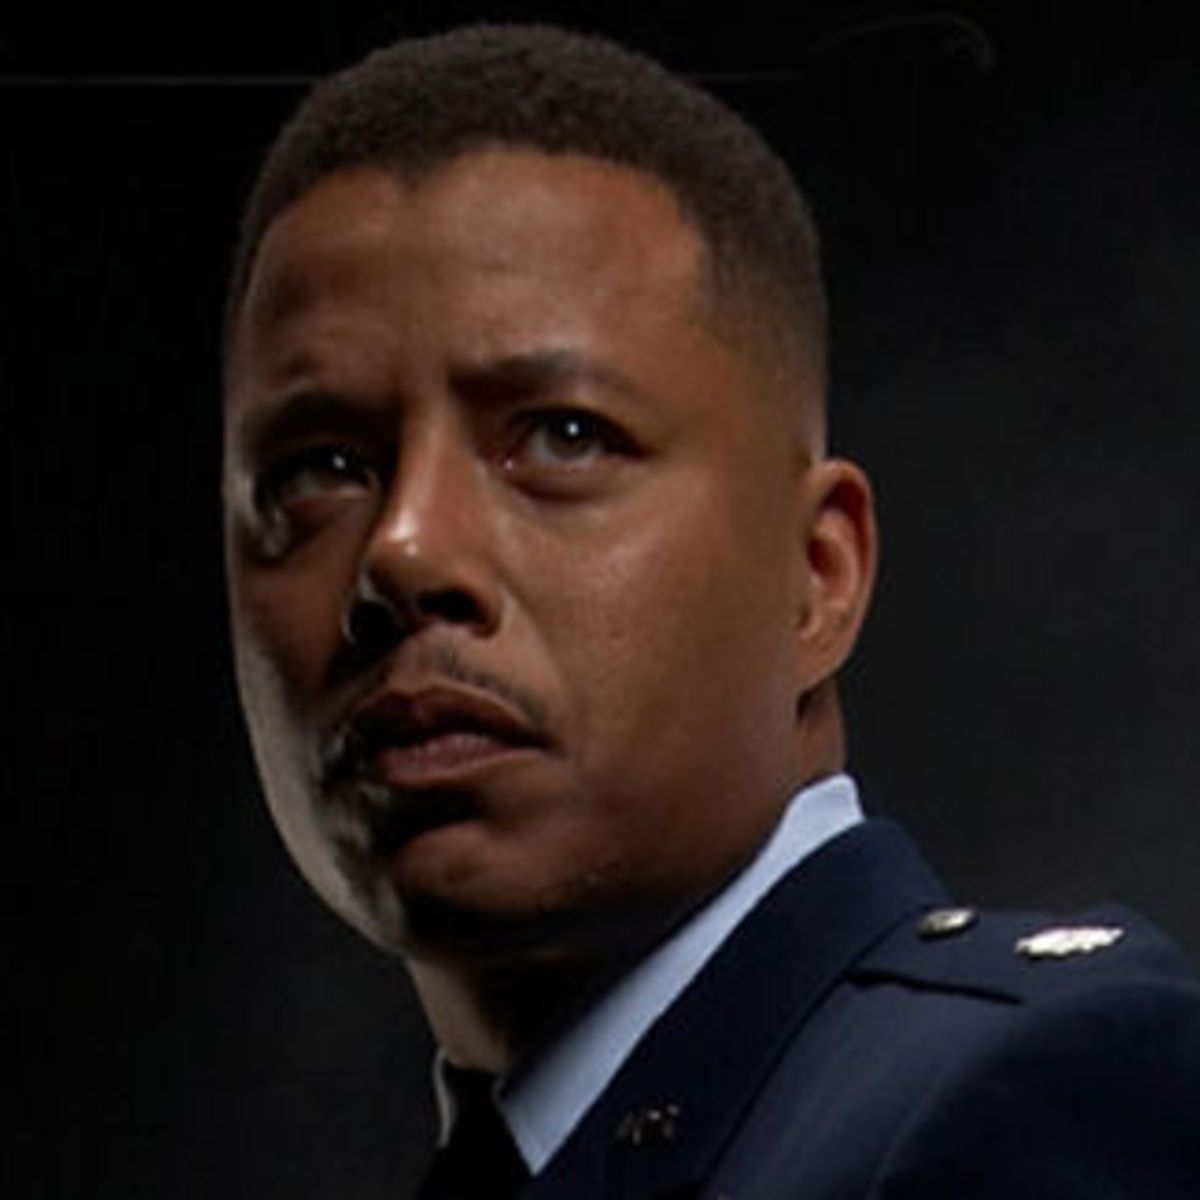 IronMan_TerrenceHoward.jpg